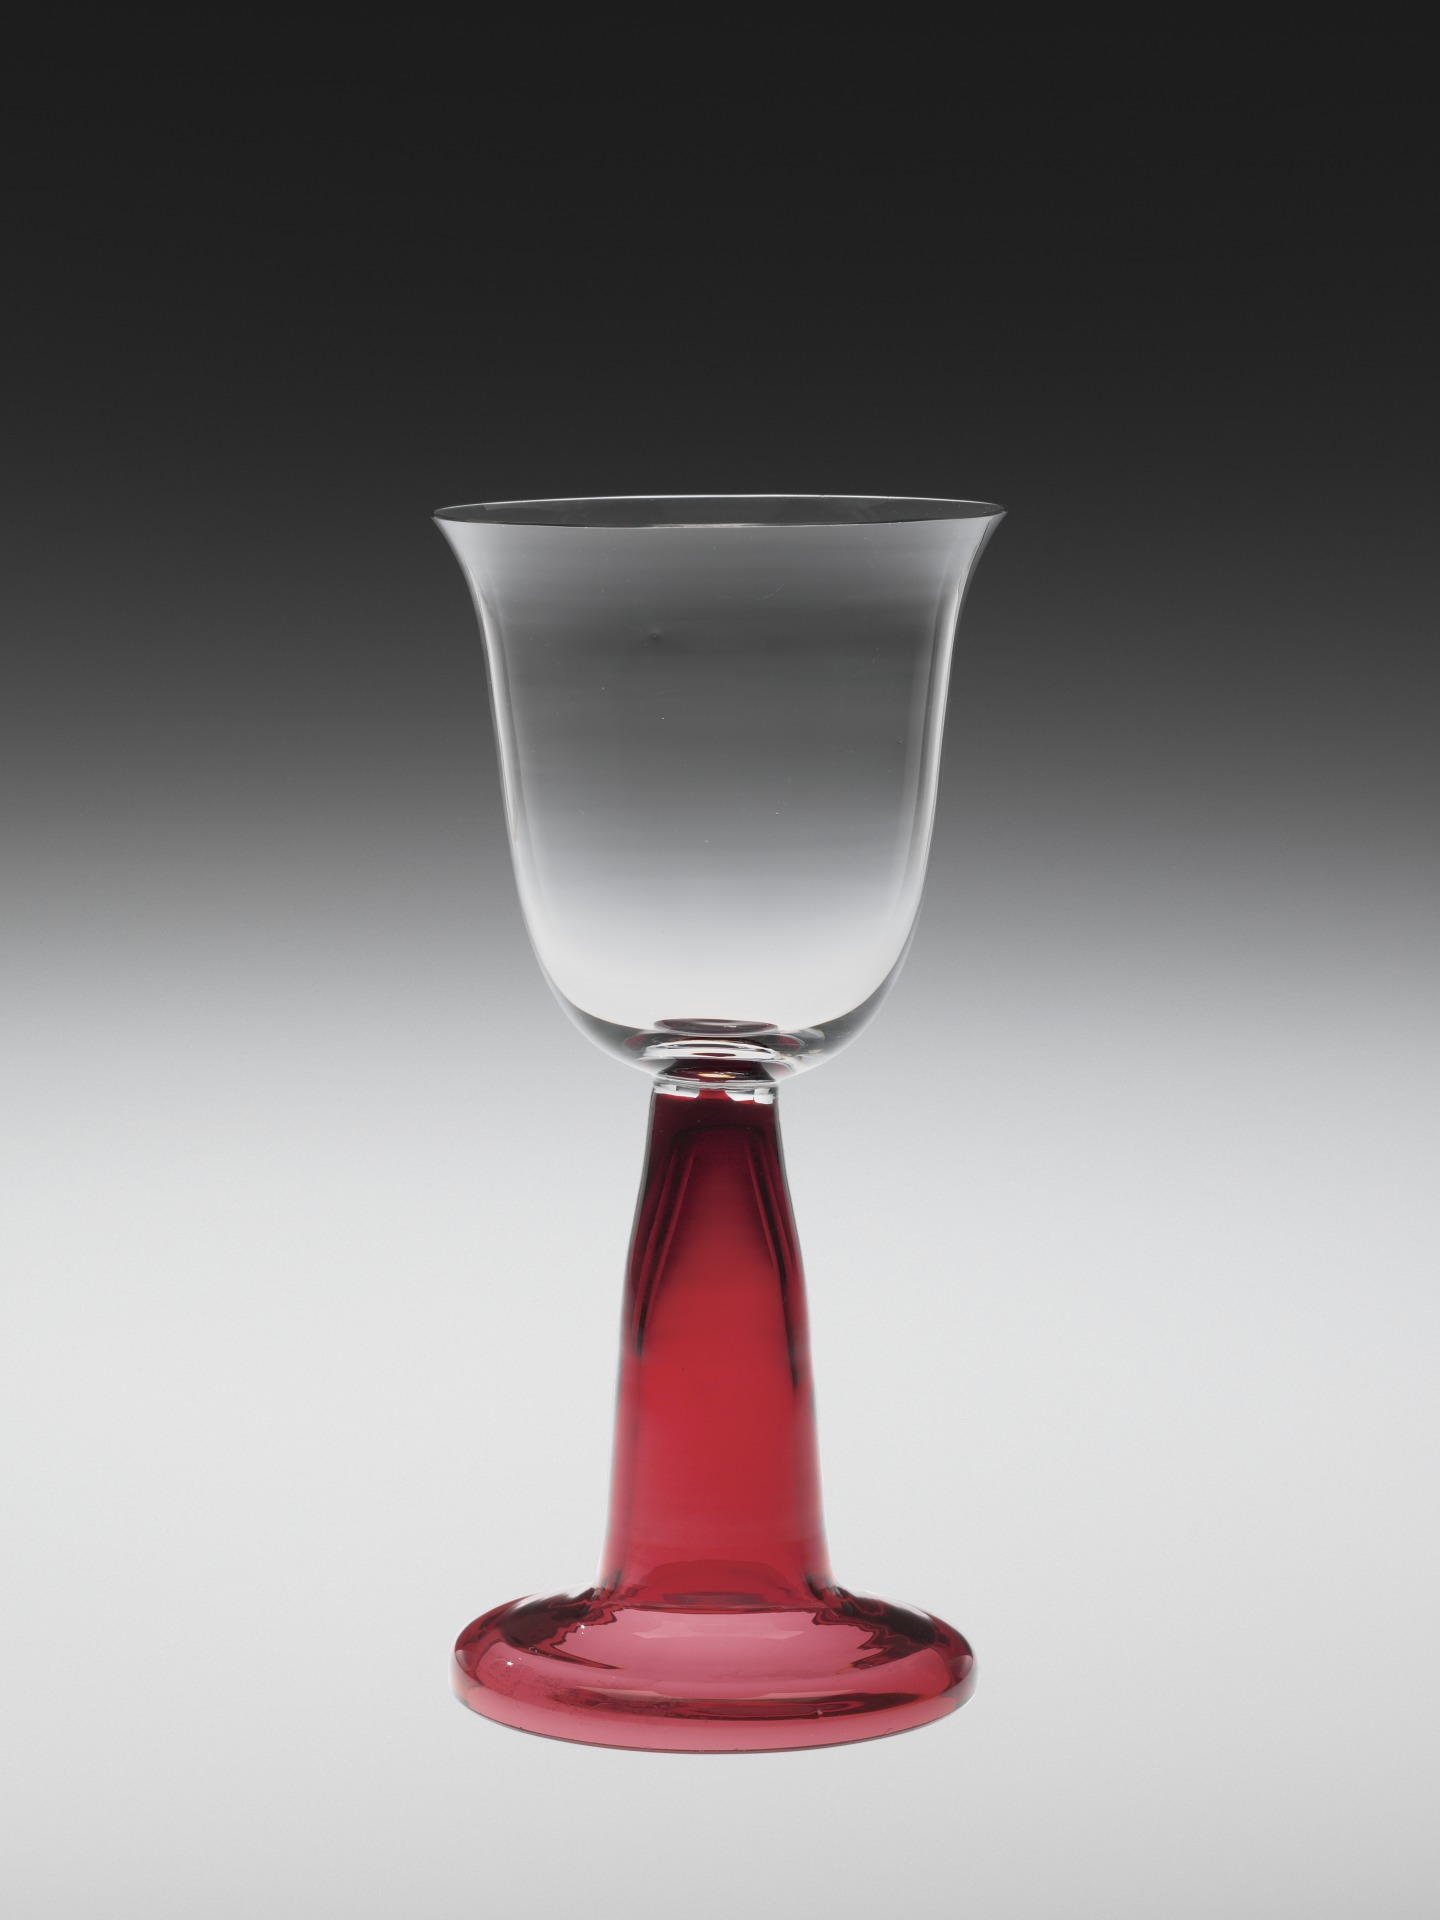 Colorless and transparent ruby glass; blown, tooled, applied. Colorless bowl with flared rim sits atop a red, open cylindrical, stem that widens slightly to domed foot.